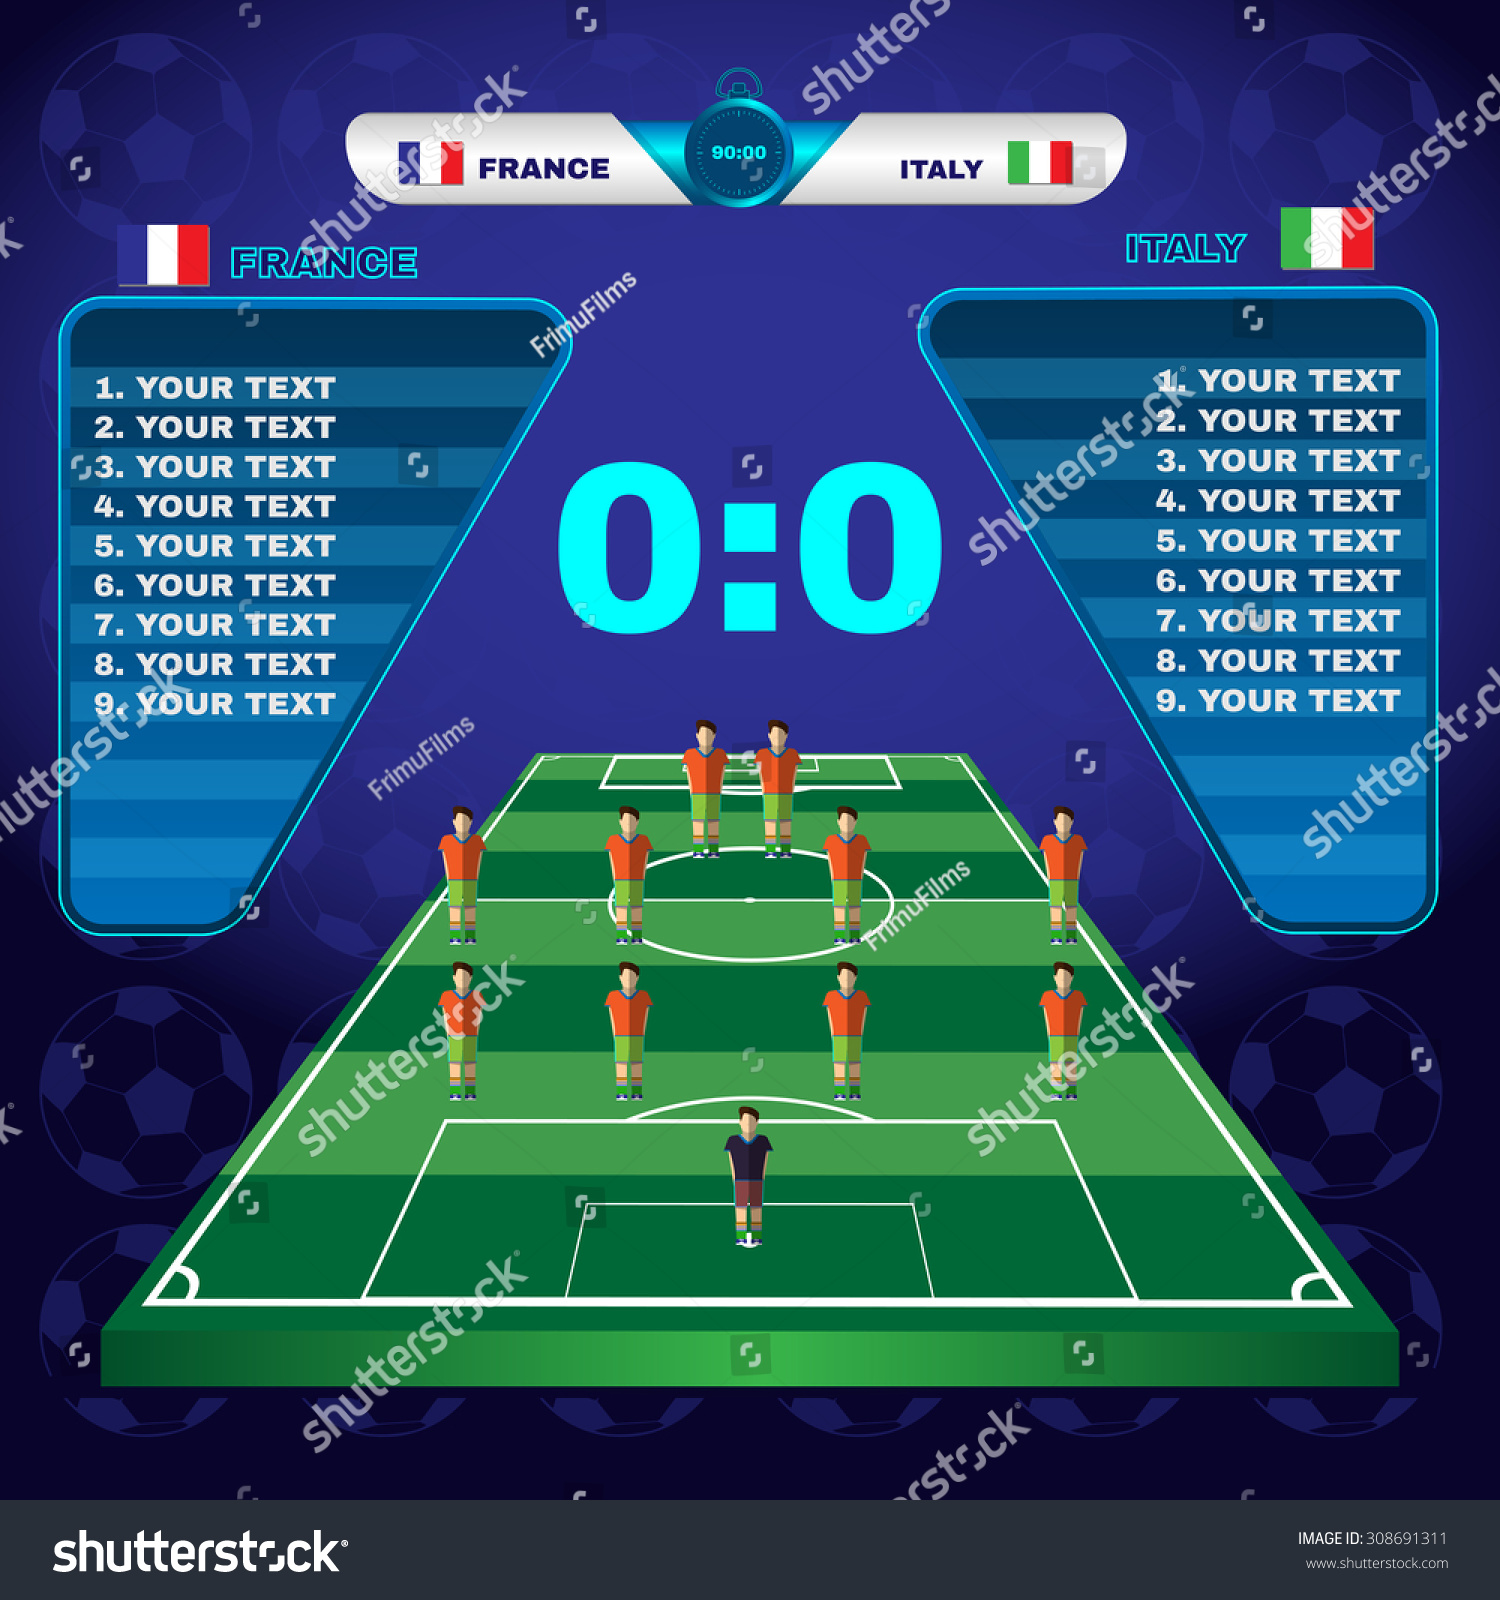 a soccer match A match is played by two teams, with each allowed no more than 11 players on the field at any one time, one of whom is a goalkeeper a match may not start if either team has fewer than seven players in national 'a' matches, a coach may use a maximum of six substitutes in other matches, such as .